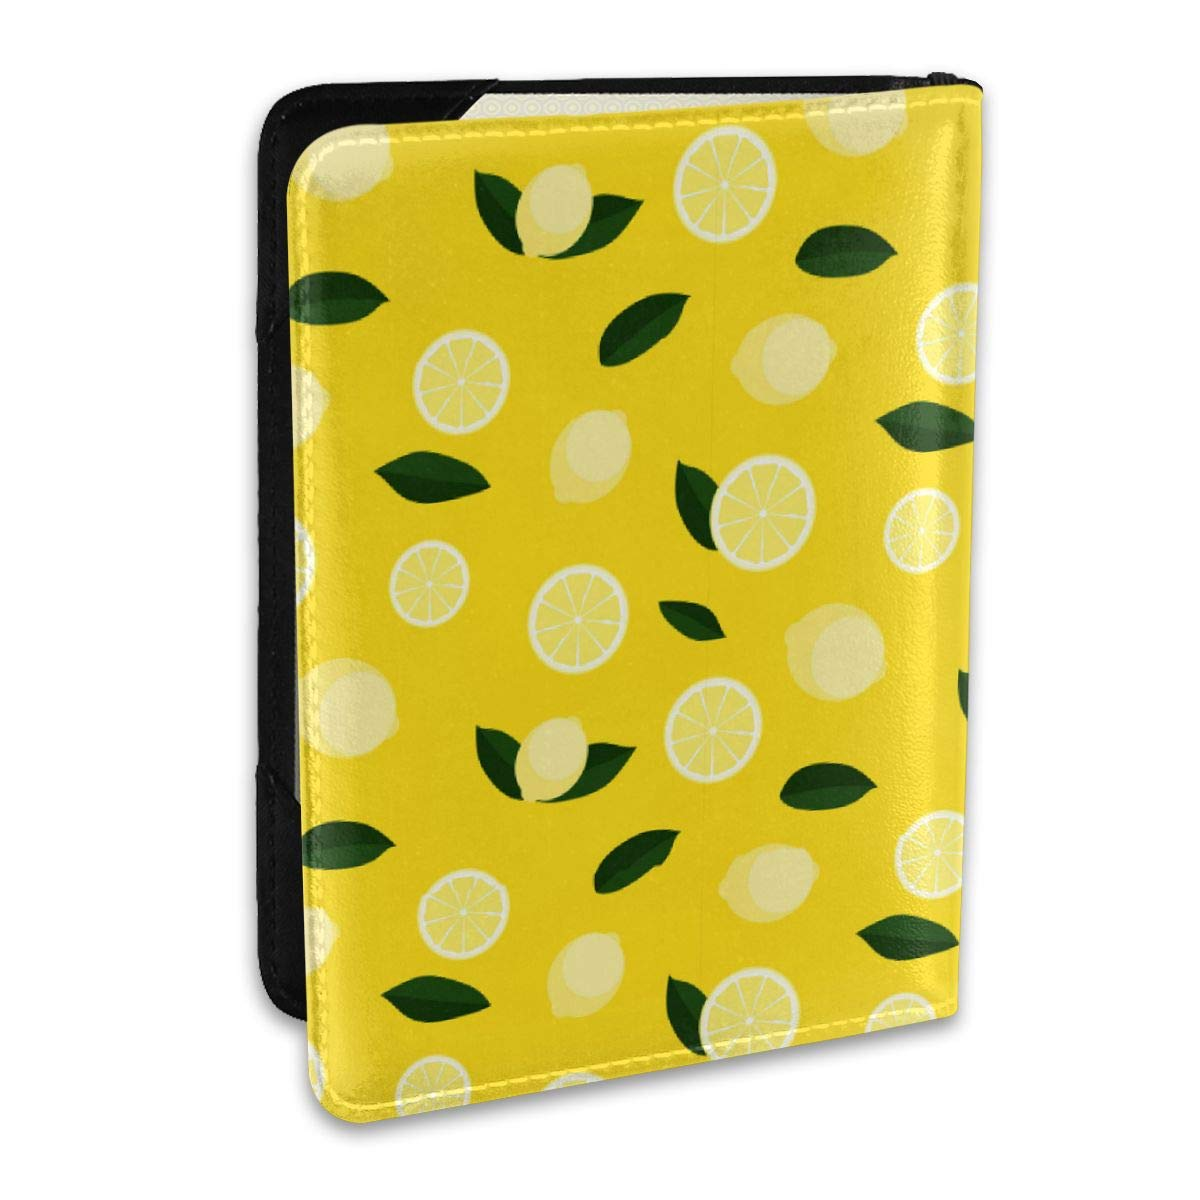 Biahos Leather Passport Cover Lemon And Green Leaves Wallet For Passport Case